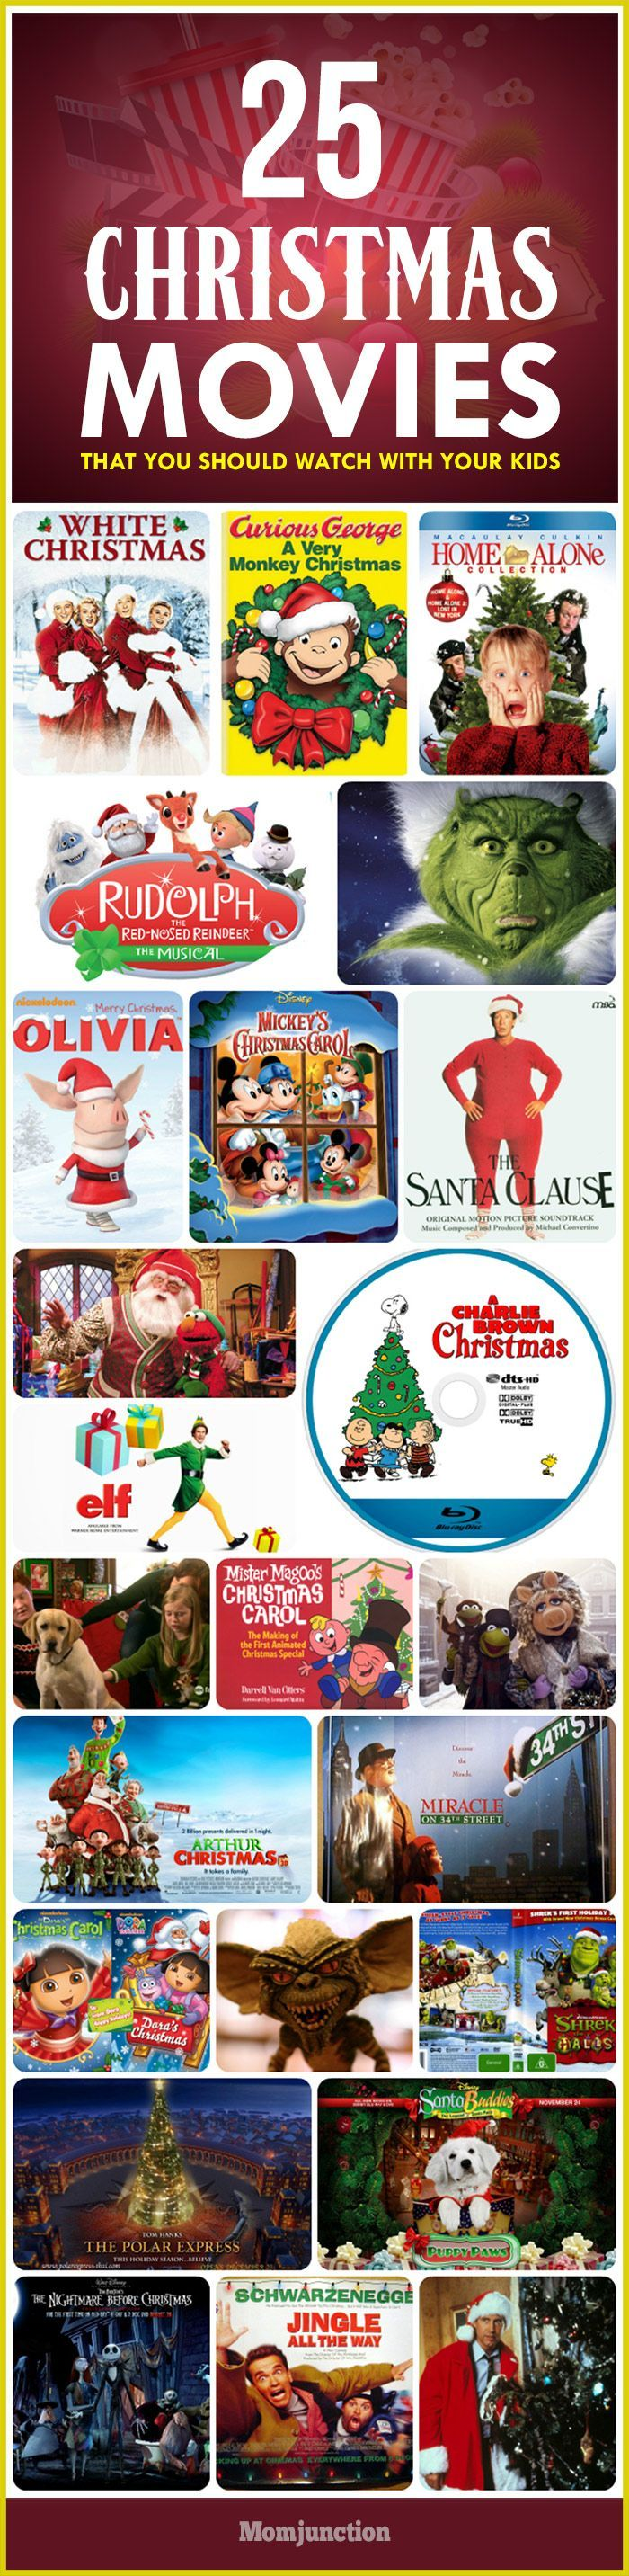 Top 25 Funny English Movies For Kids To Watch Kids Christmas Movies Best Christmas Movies Christmas Movies